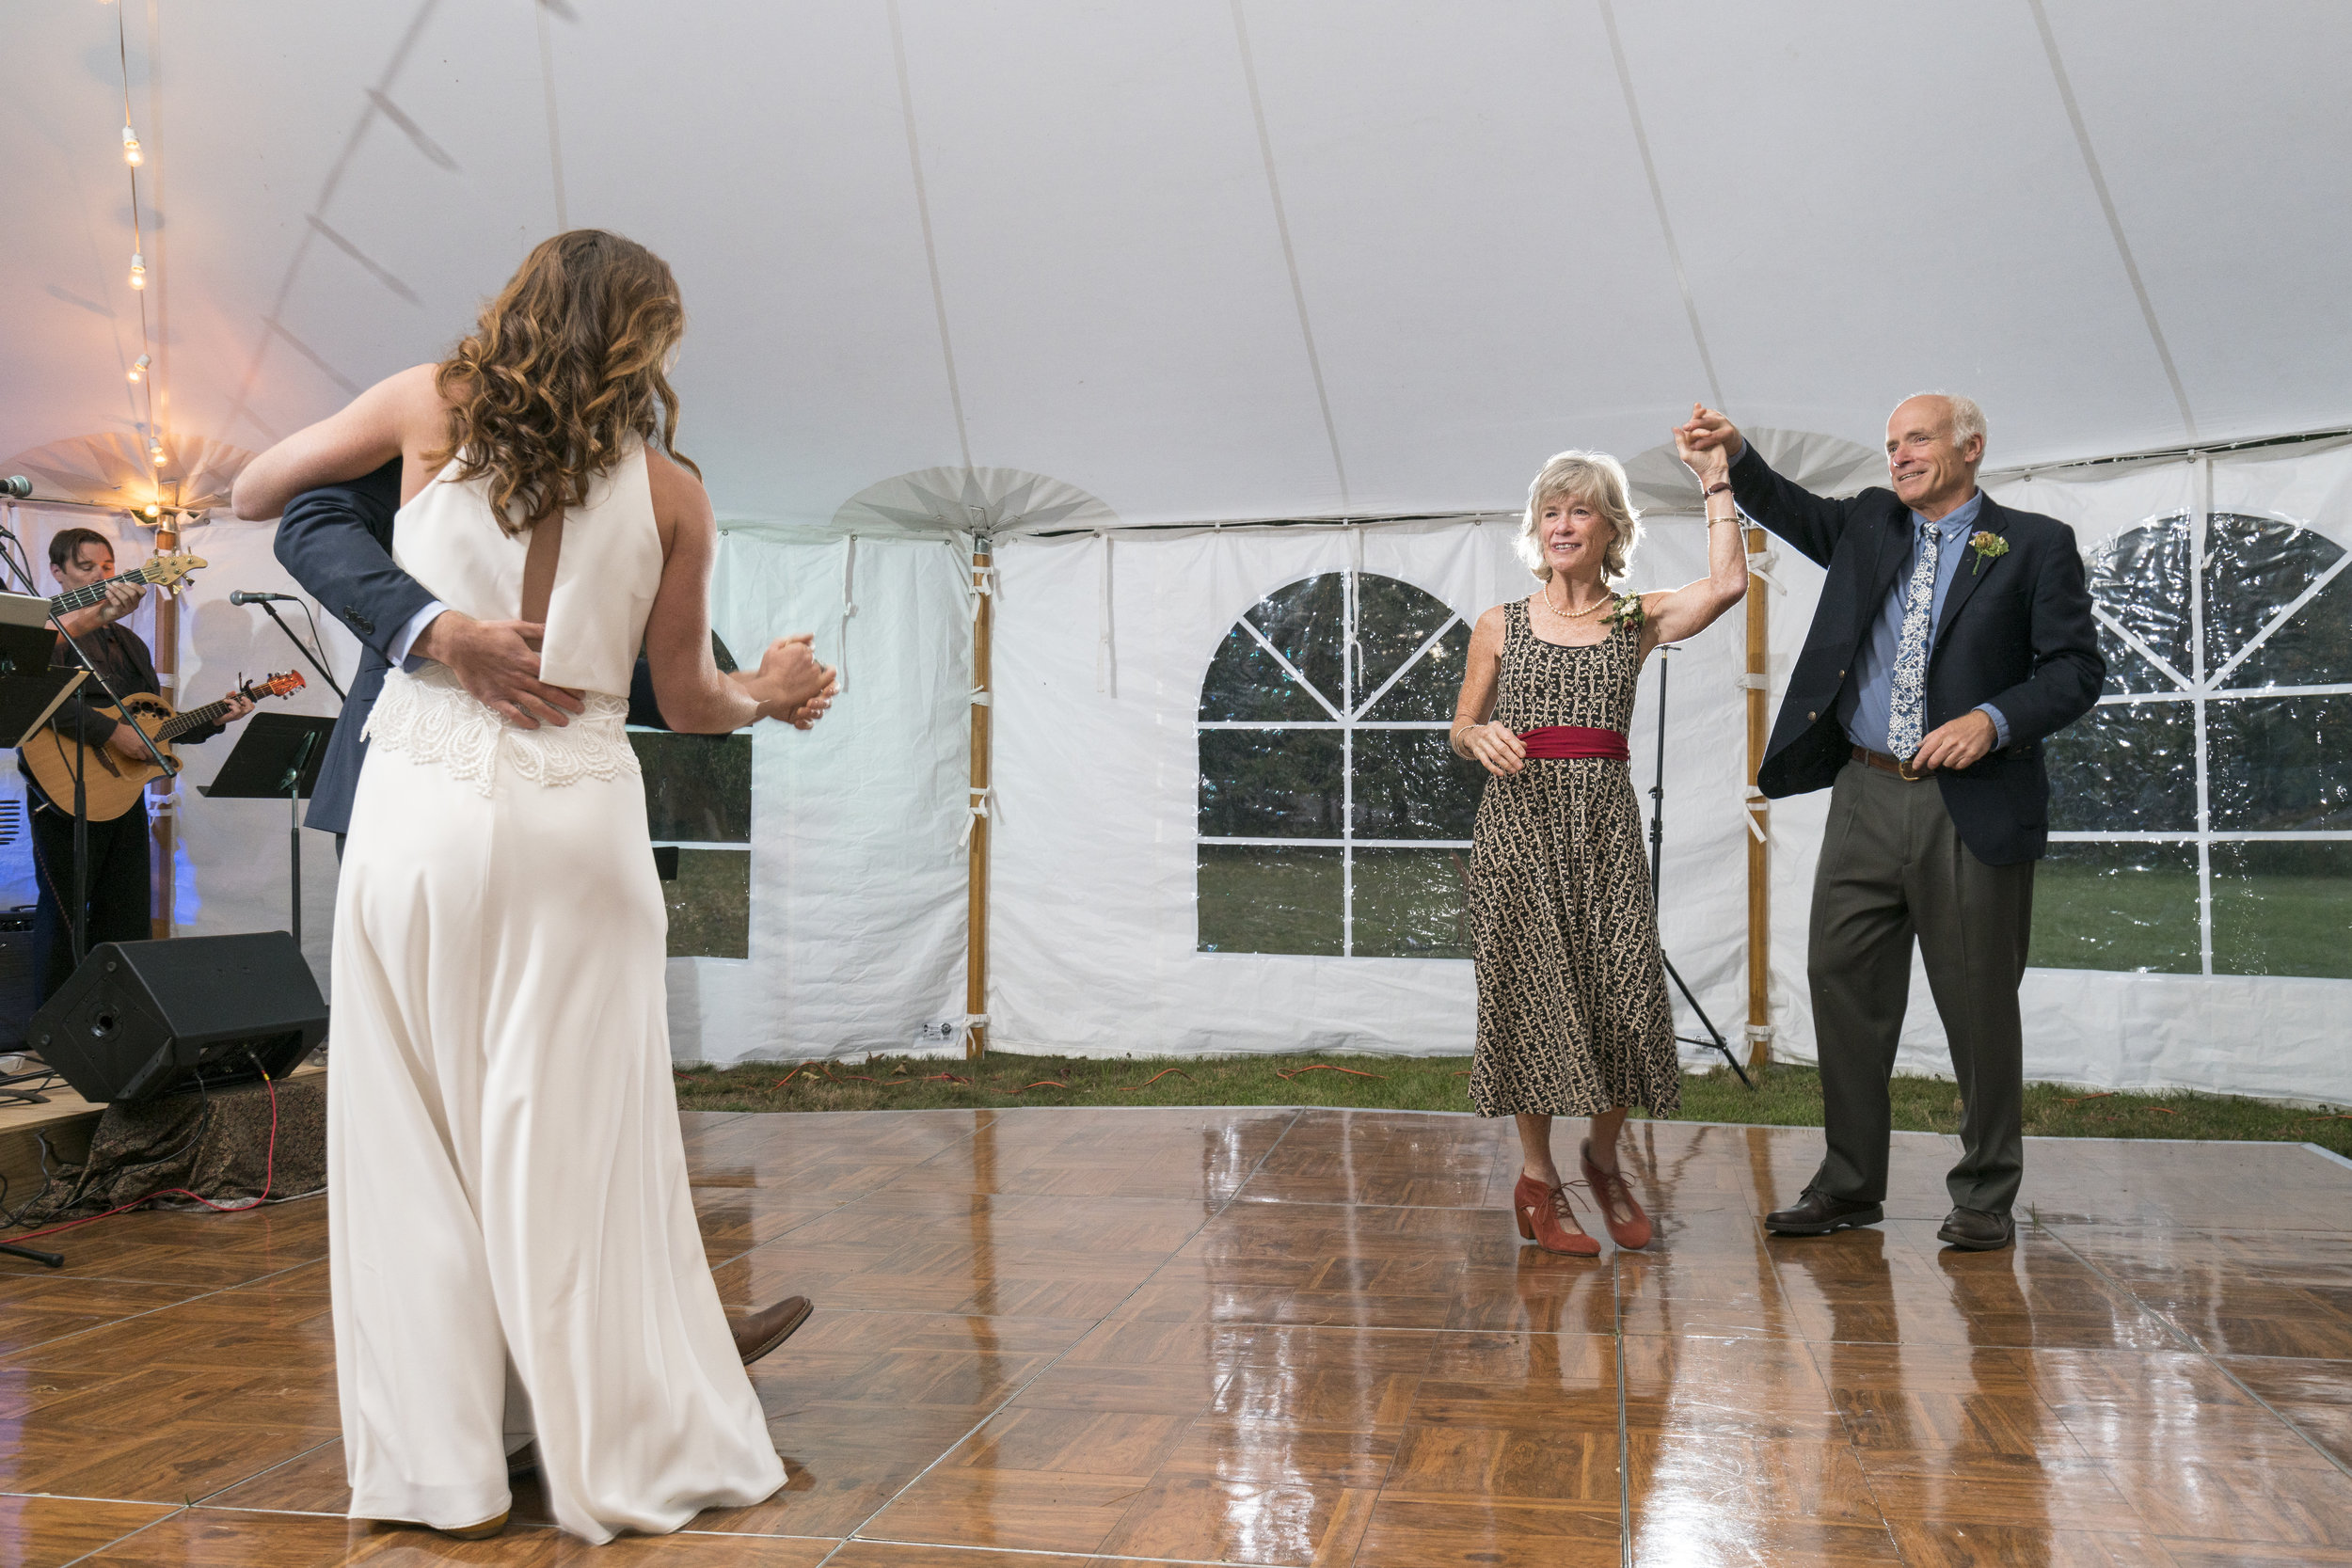 Com_HancockWedding_JPGs (406 of 368).jpg